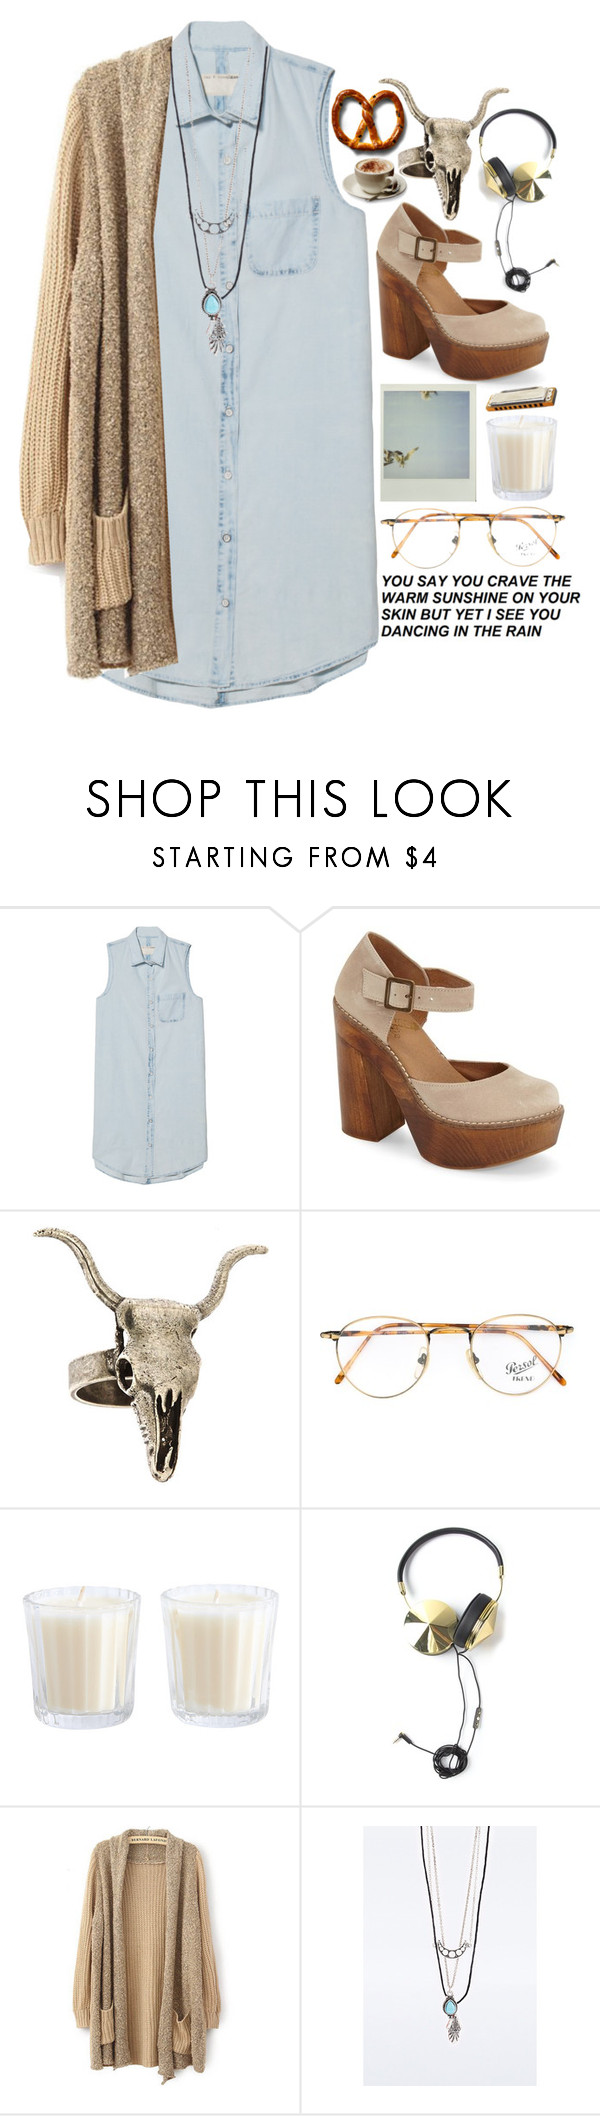 """""""People Hearing without listening."""" by paper-faces-on-parade ❤ liked on Polyvore featuring rag & bone, Steven by Steve Madden, Mixology NYC, Persol and Frends"""